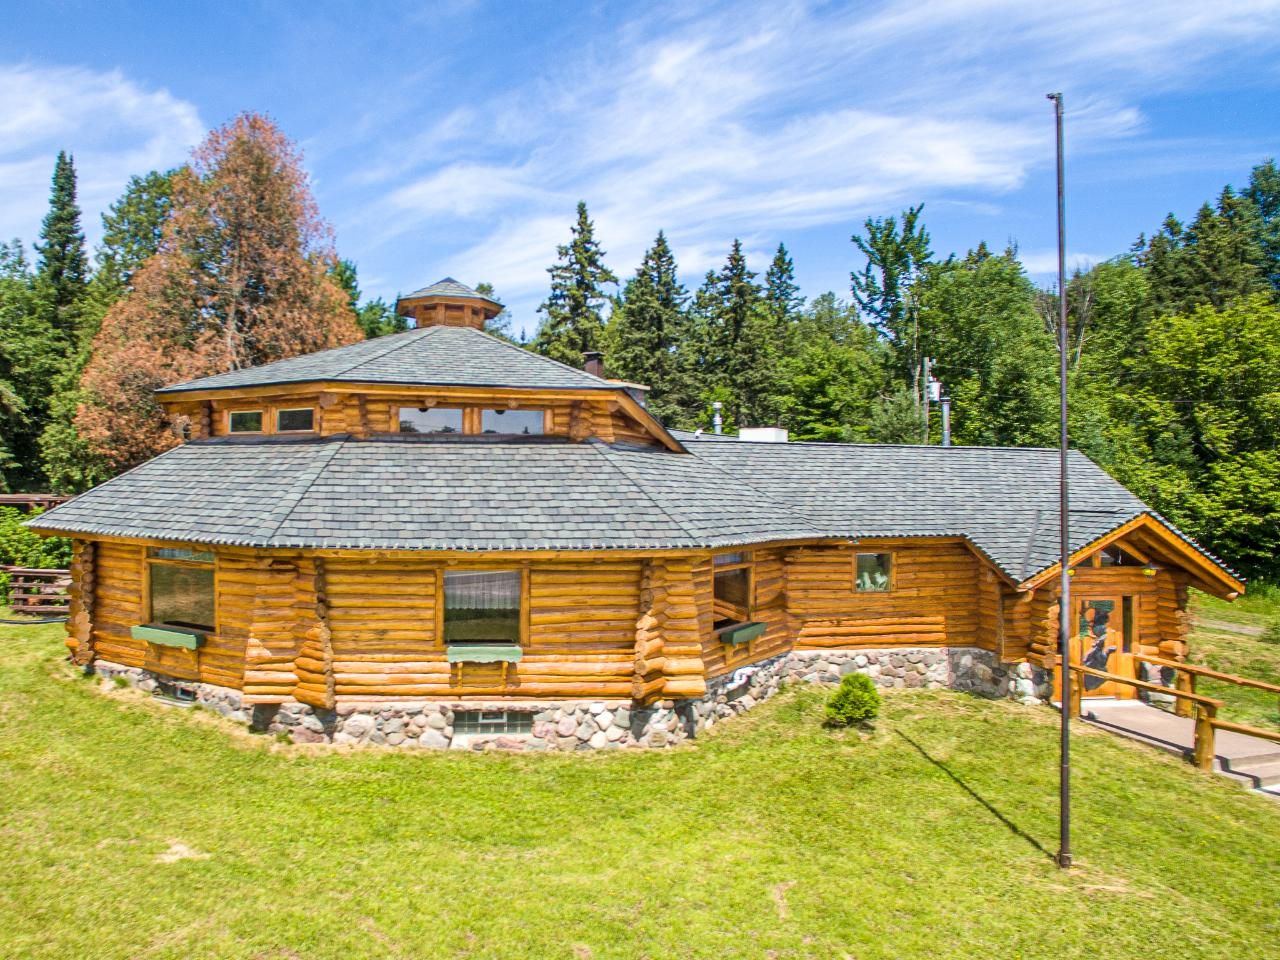 Imagine what you can do with this incredibly well finished full log masterpiece located on busy US-2. Over $700K invested in renovations and absolutely no expense was spared in terms of material quality from floor to ceiling. Could be used as an impressive business location, restaurant, rental lodging (there are 3 bedrooms downstairs along with a master bath), B&B, even a luxurious home, or whatever one can imagine. Situated on 11 acres with a huge pond, this property is located on US Highway 2 and is ready to use and enjoy now! Massive stone fireplaces, the finest quality finishes, wood carvings, a gorgeous bar, impressive loft, and incredible recreation area--no detail was overlooked! Just a couple miles from the best skiing in the Midwest, across the road from the snowmobile/ATV trail, and conveniently located right next to the medical center. One is sure to be impressed upon entering this property which is offered for a mere fraction of its replacement value....call today! Formerly a restaurant converted into building suitable for single family use. Also listed commercially